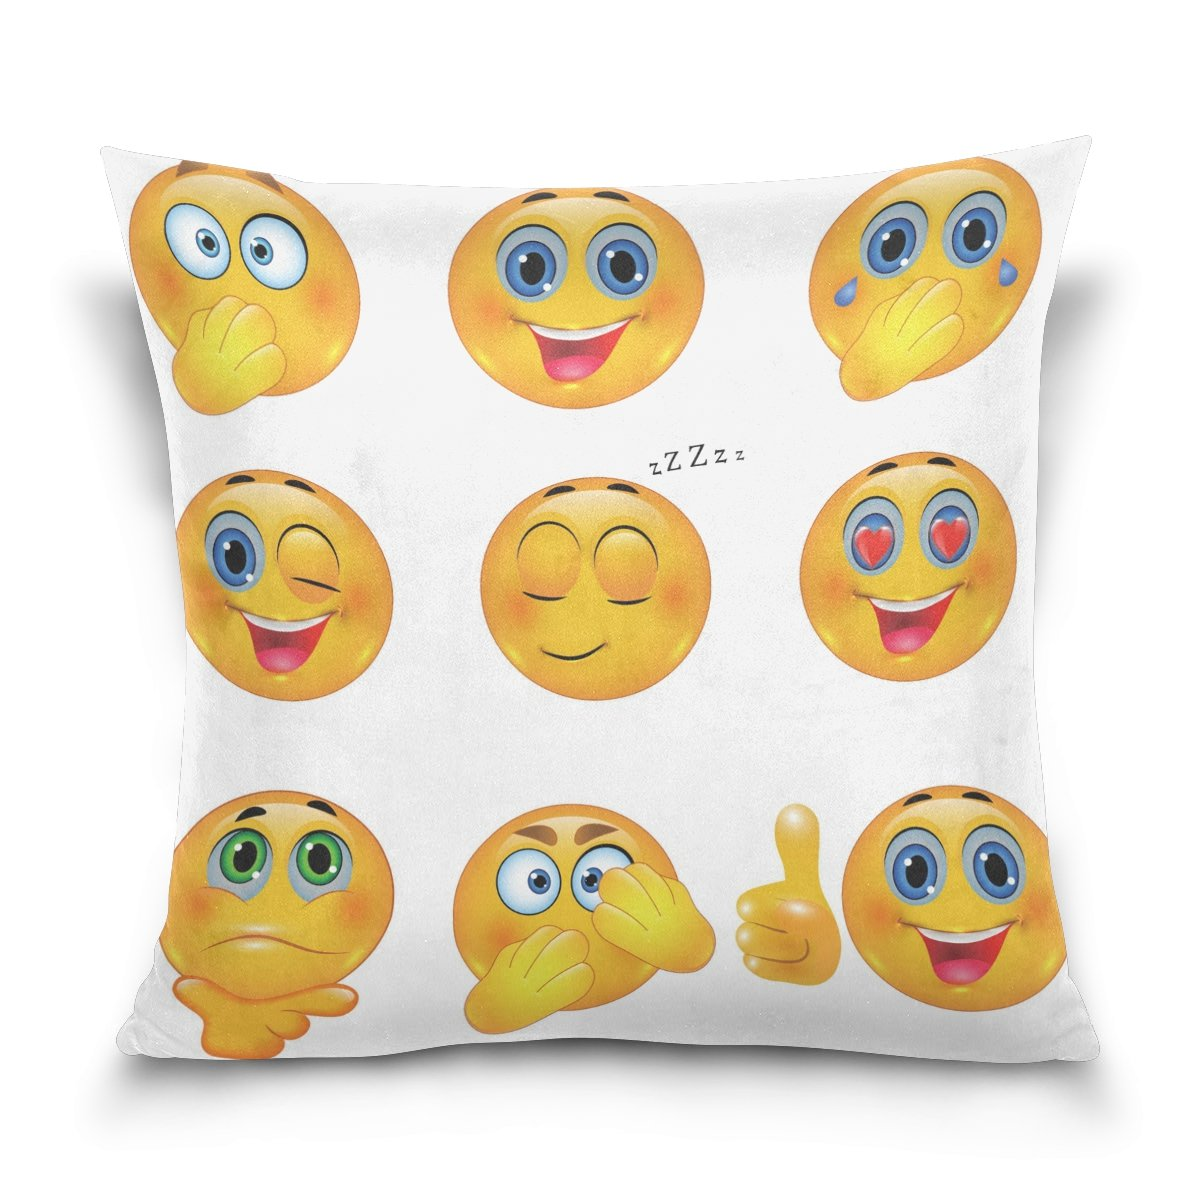 ALAZA Funny Emoji Cotton Pillowcase 20 X 20 Inches Twin Sides, Smiley Emotional Faces Pillow Case Sham Cover Protector Decorative for Home Hotel Couch Ded